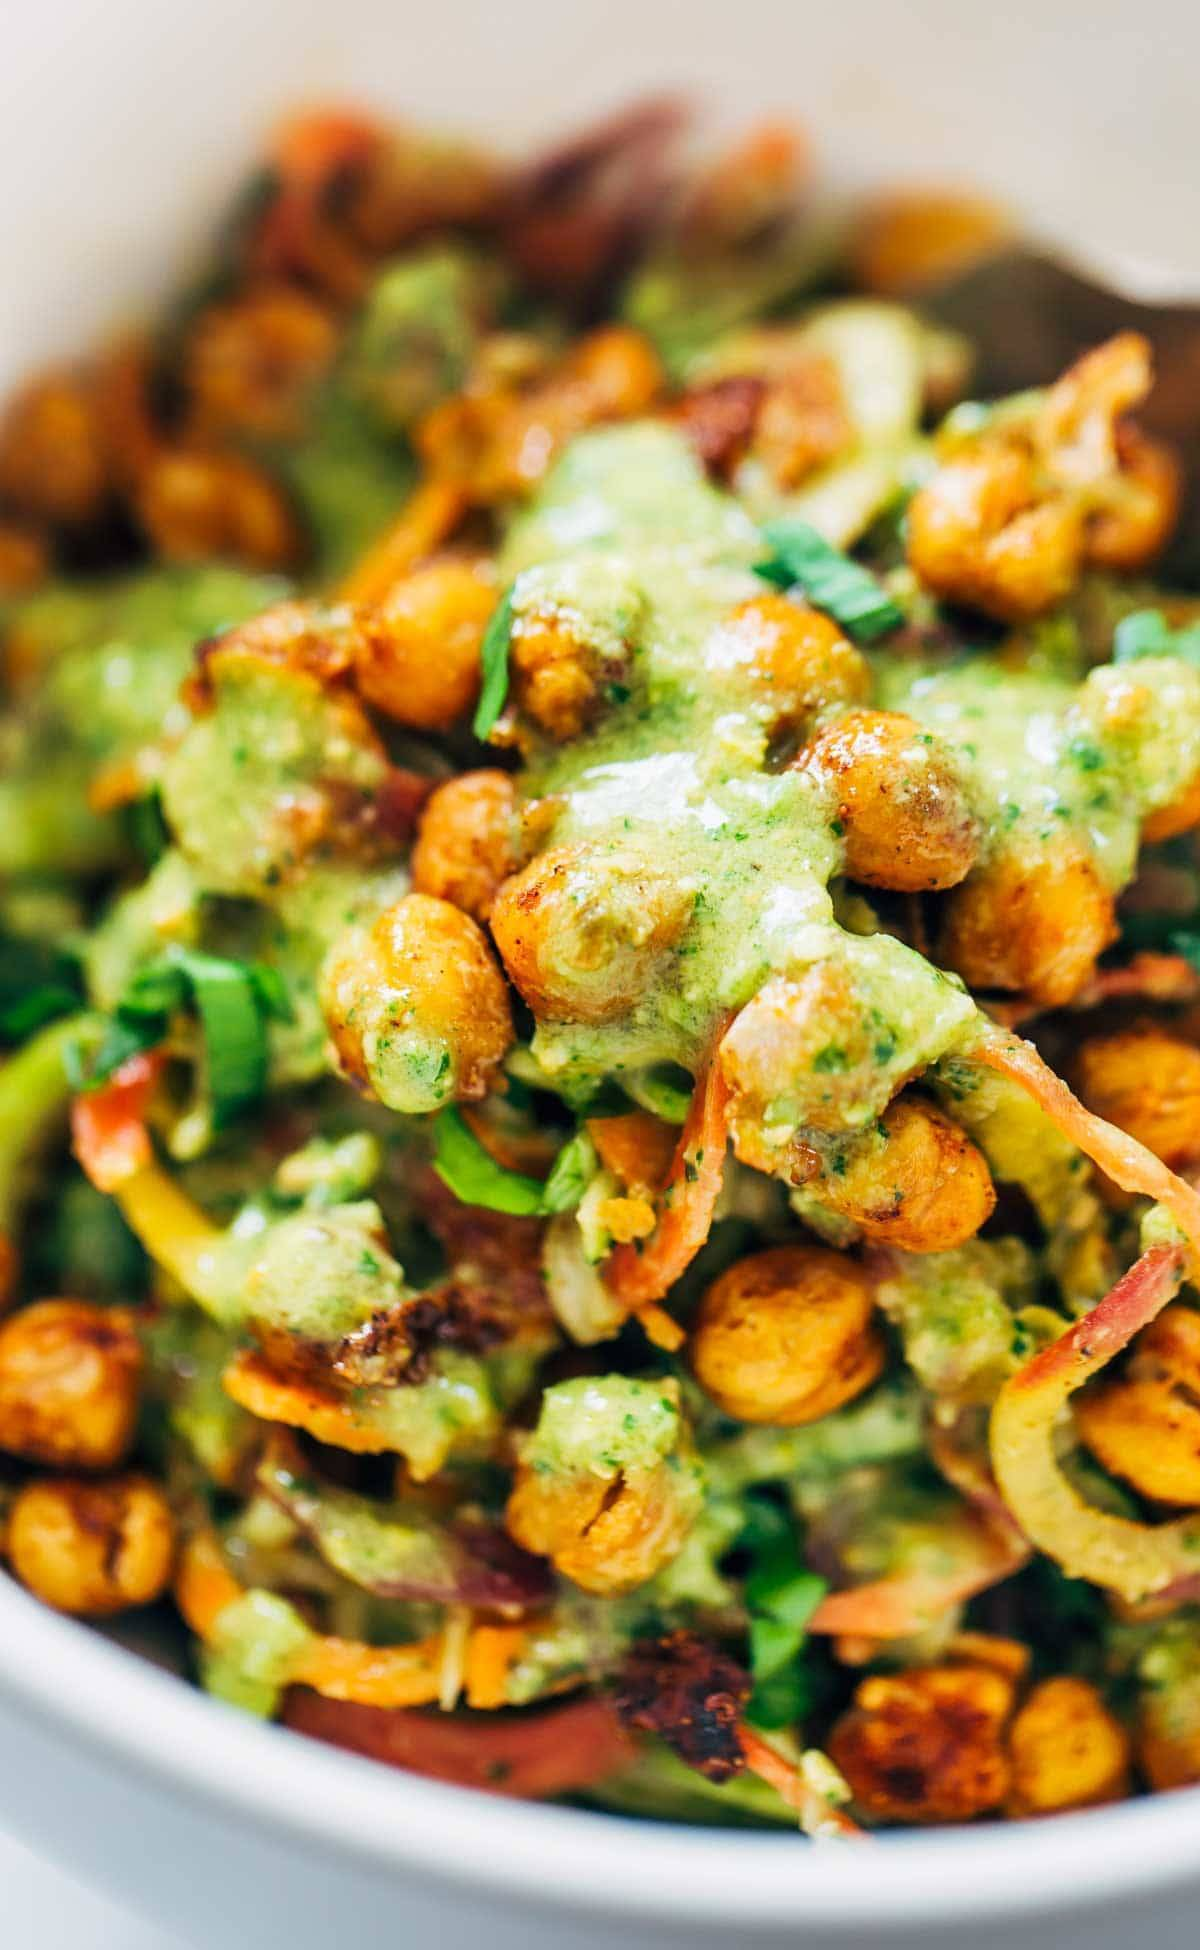 Rainbow Power Salad with Roasted Chickpeas - a filling salad that comes together with just three easy ingredients and a five minute sauce. So much flavor, texture, and color! Vegan.